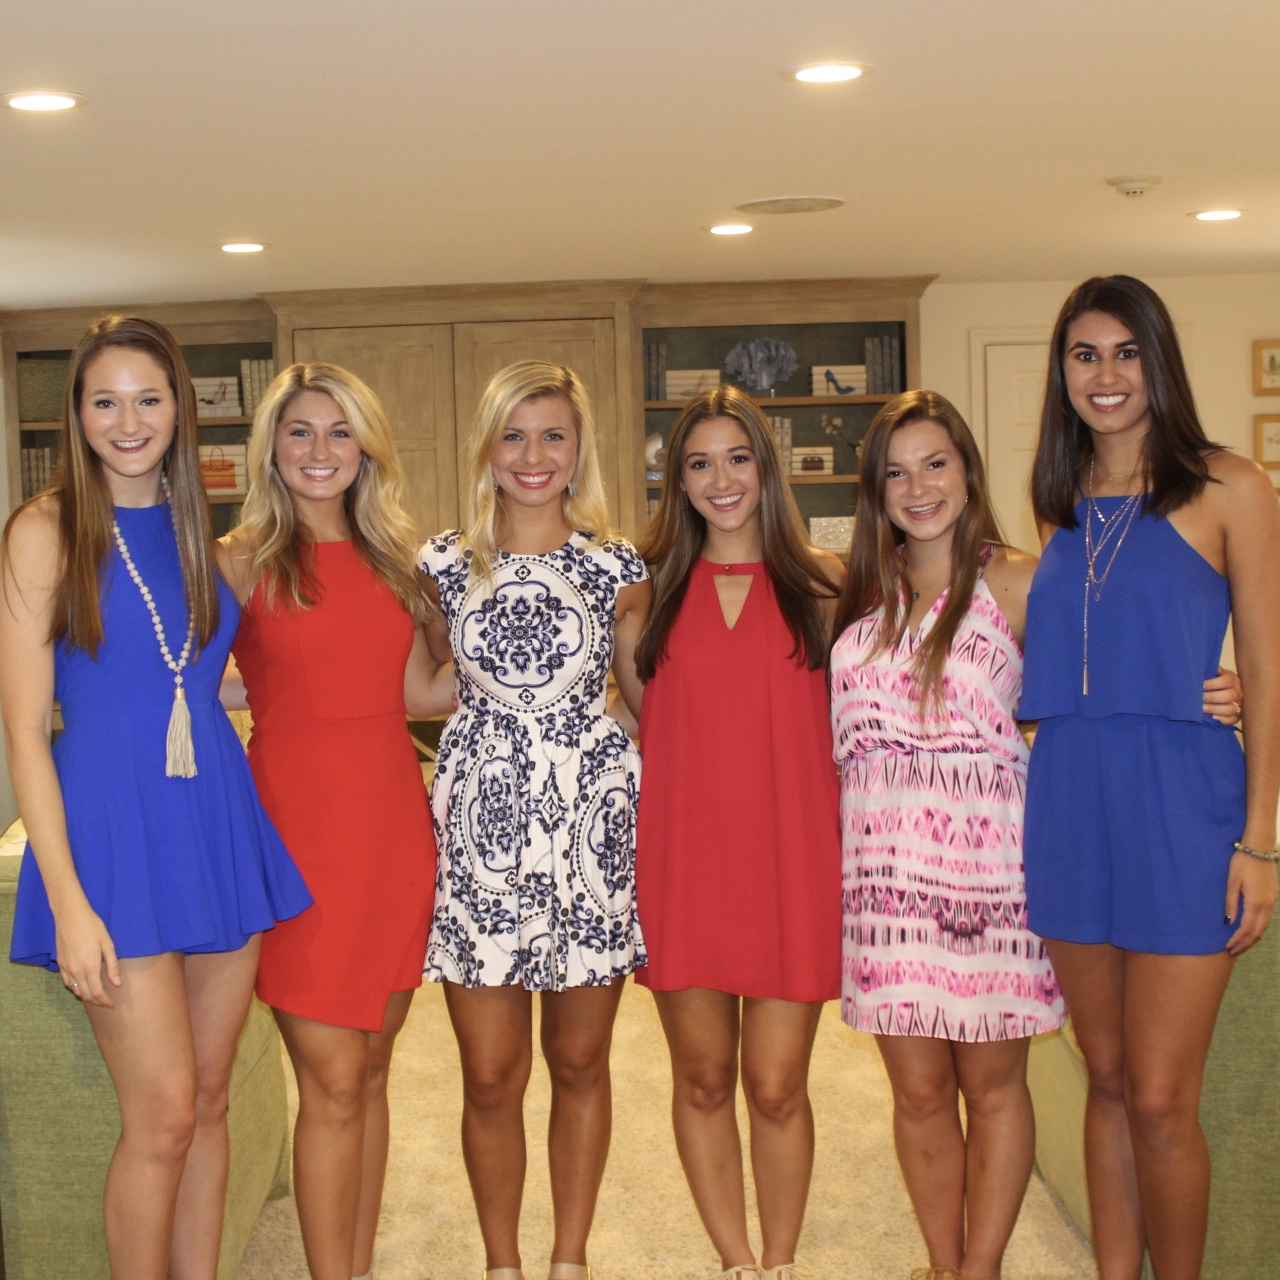 Buy Ole sorority miss recruitment what to wear picture trends